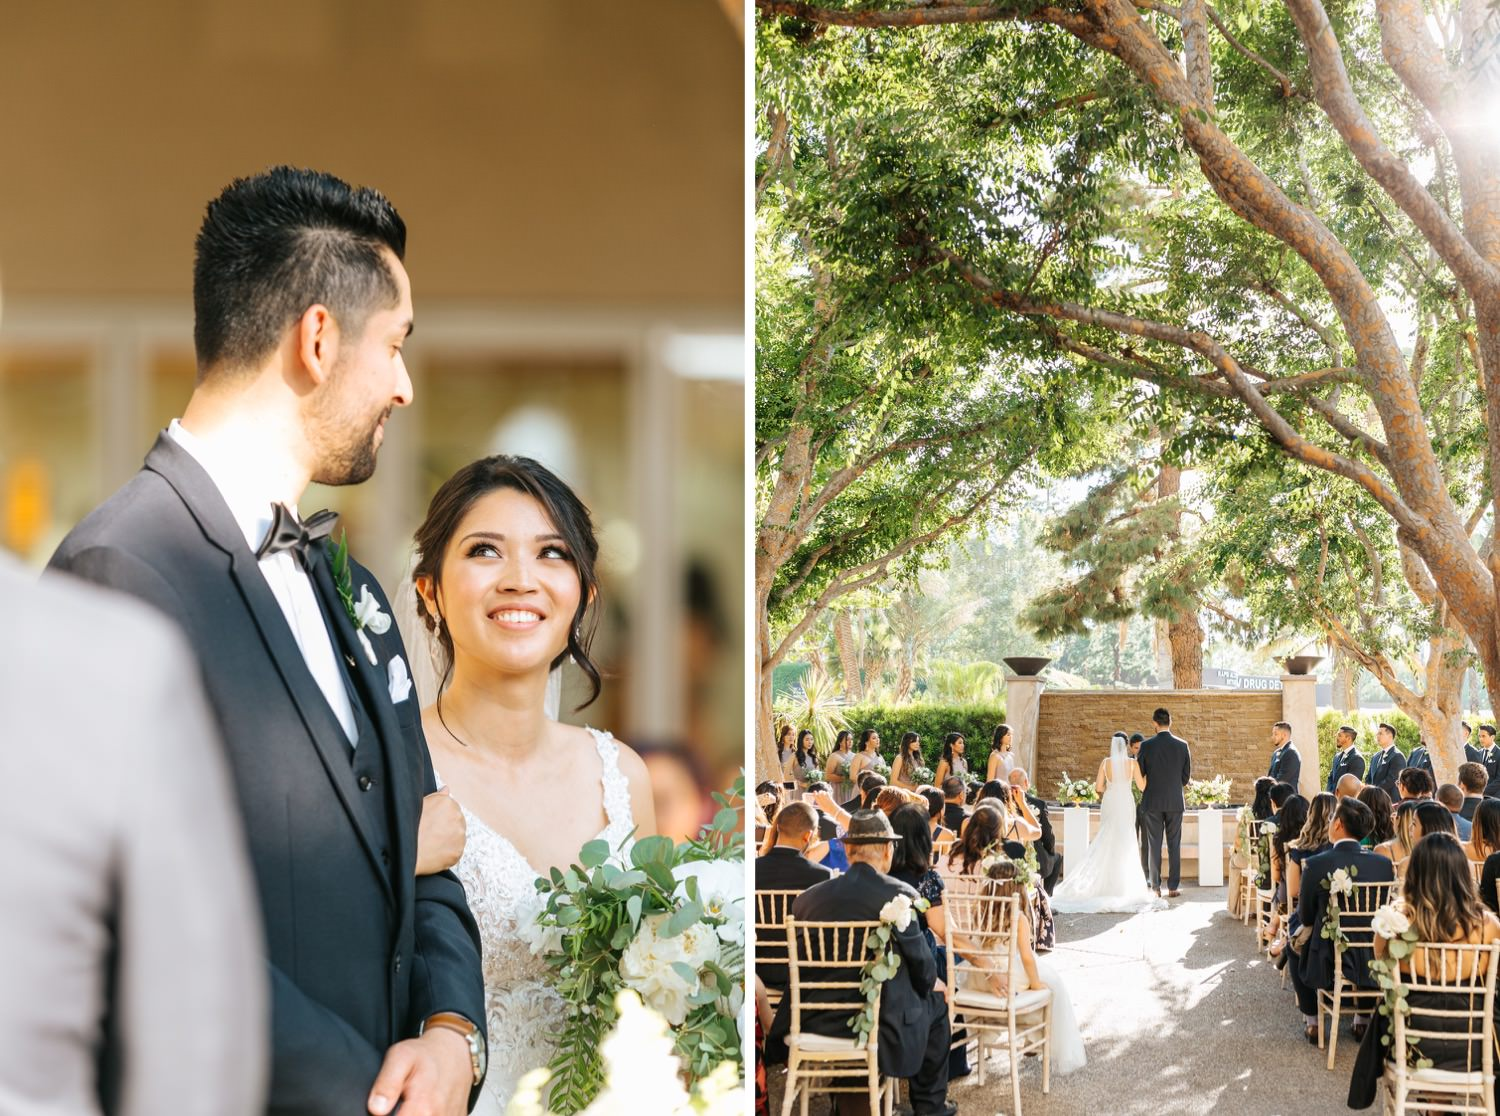 Wedding Ceremony Inspiration - Wedding Ceremony Decor - https://brittneyhannonphotography.com